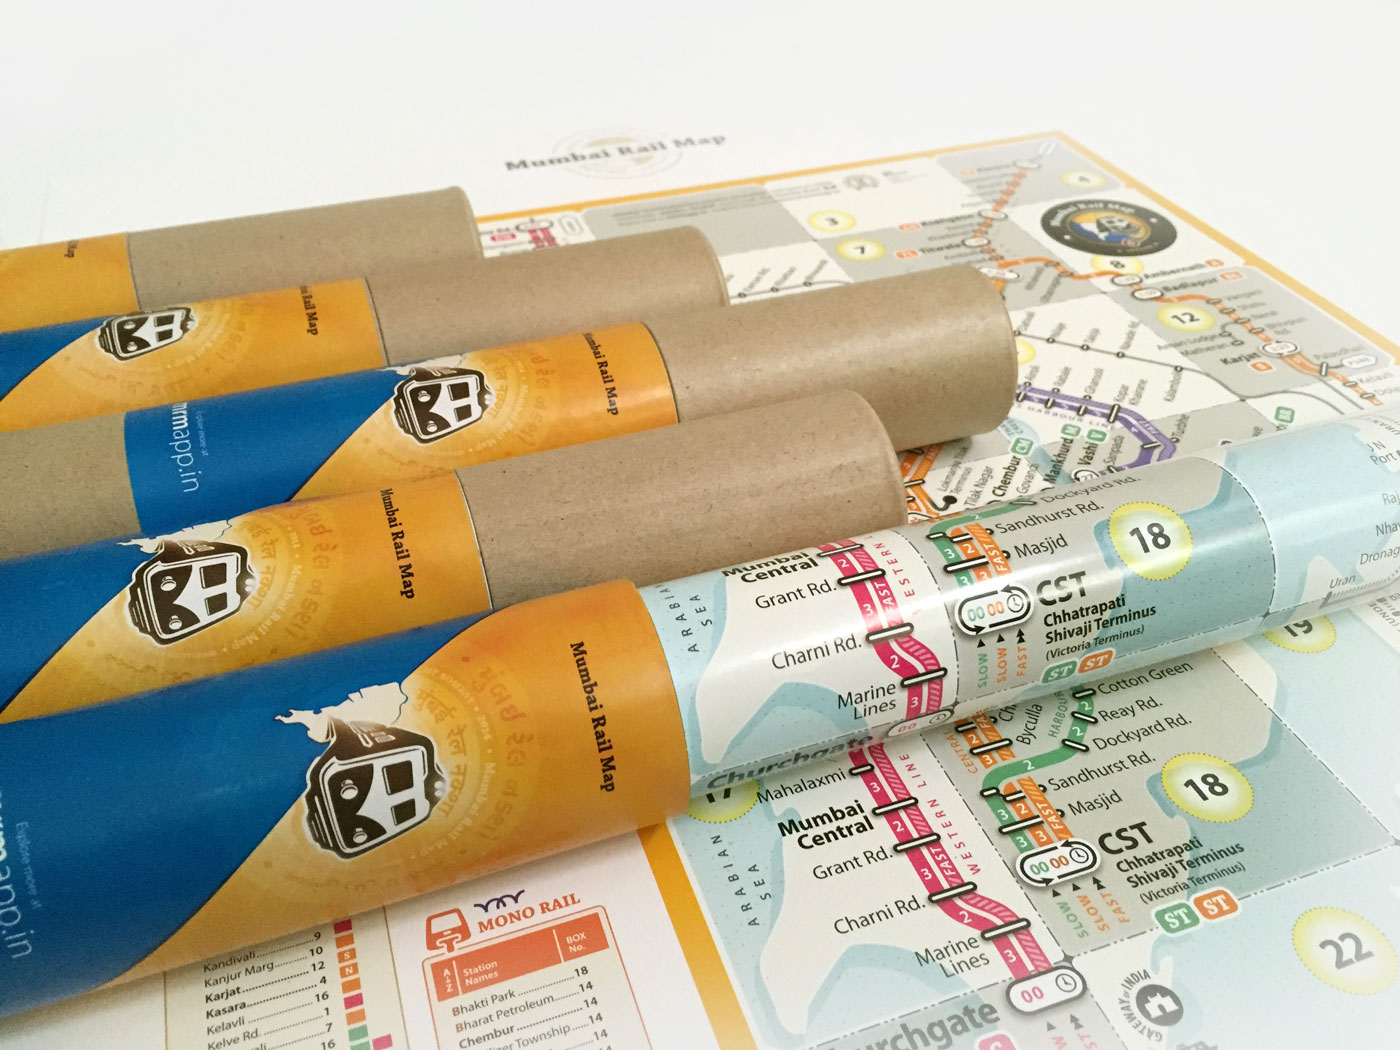 mumbai rail map roll print